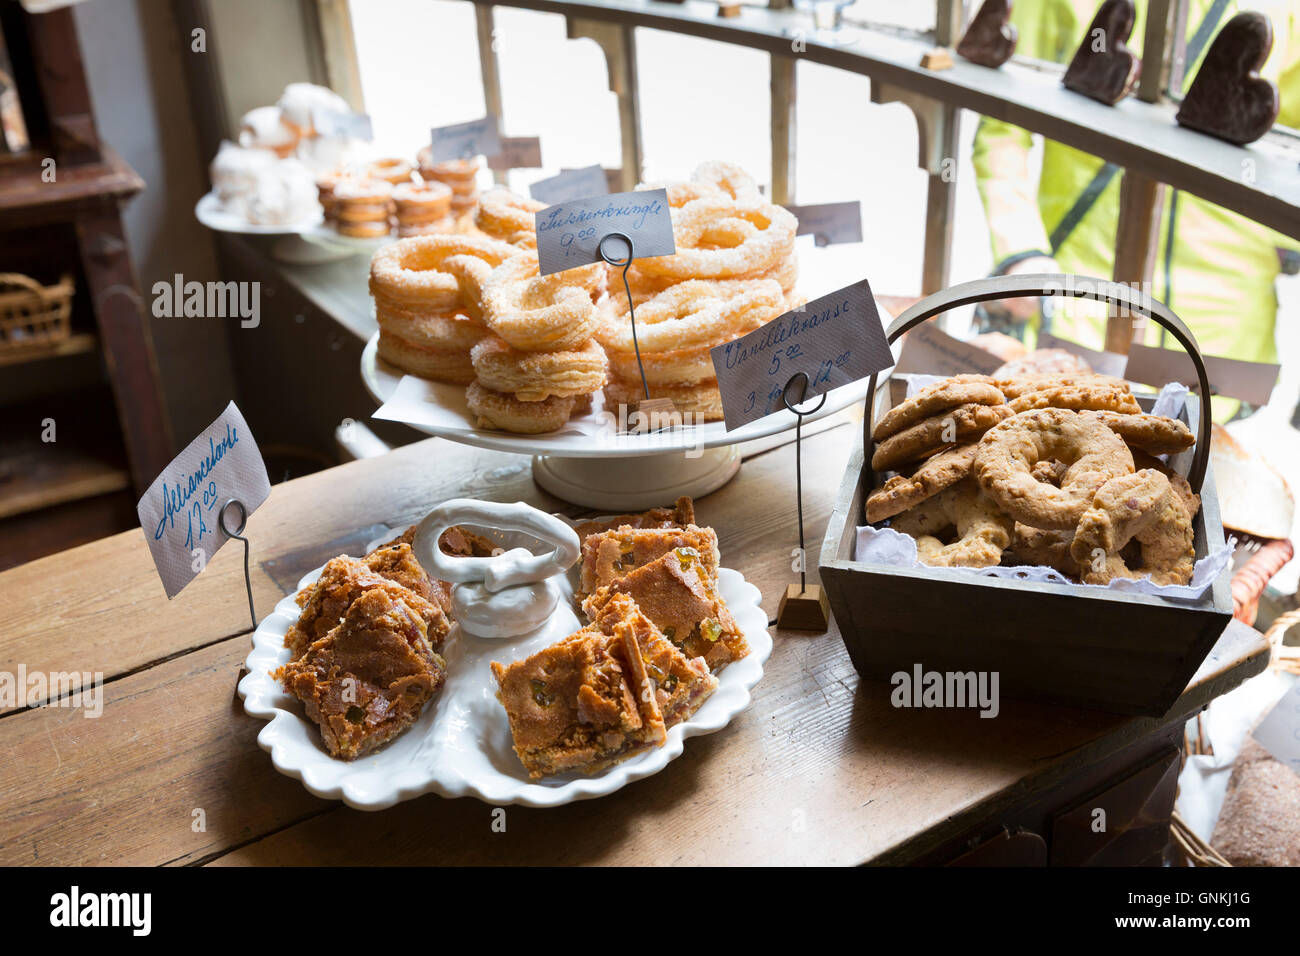 Cakes at period bakery at Den Gamle By, The Old Town, folk museum at Aarhus, Denmark - Stock Image